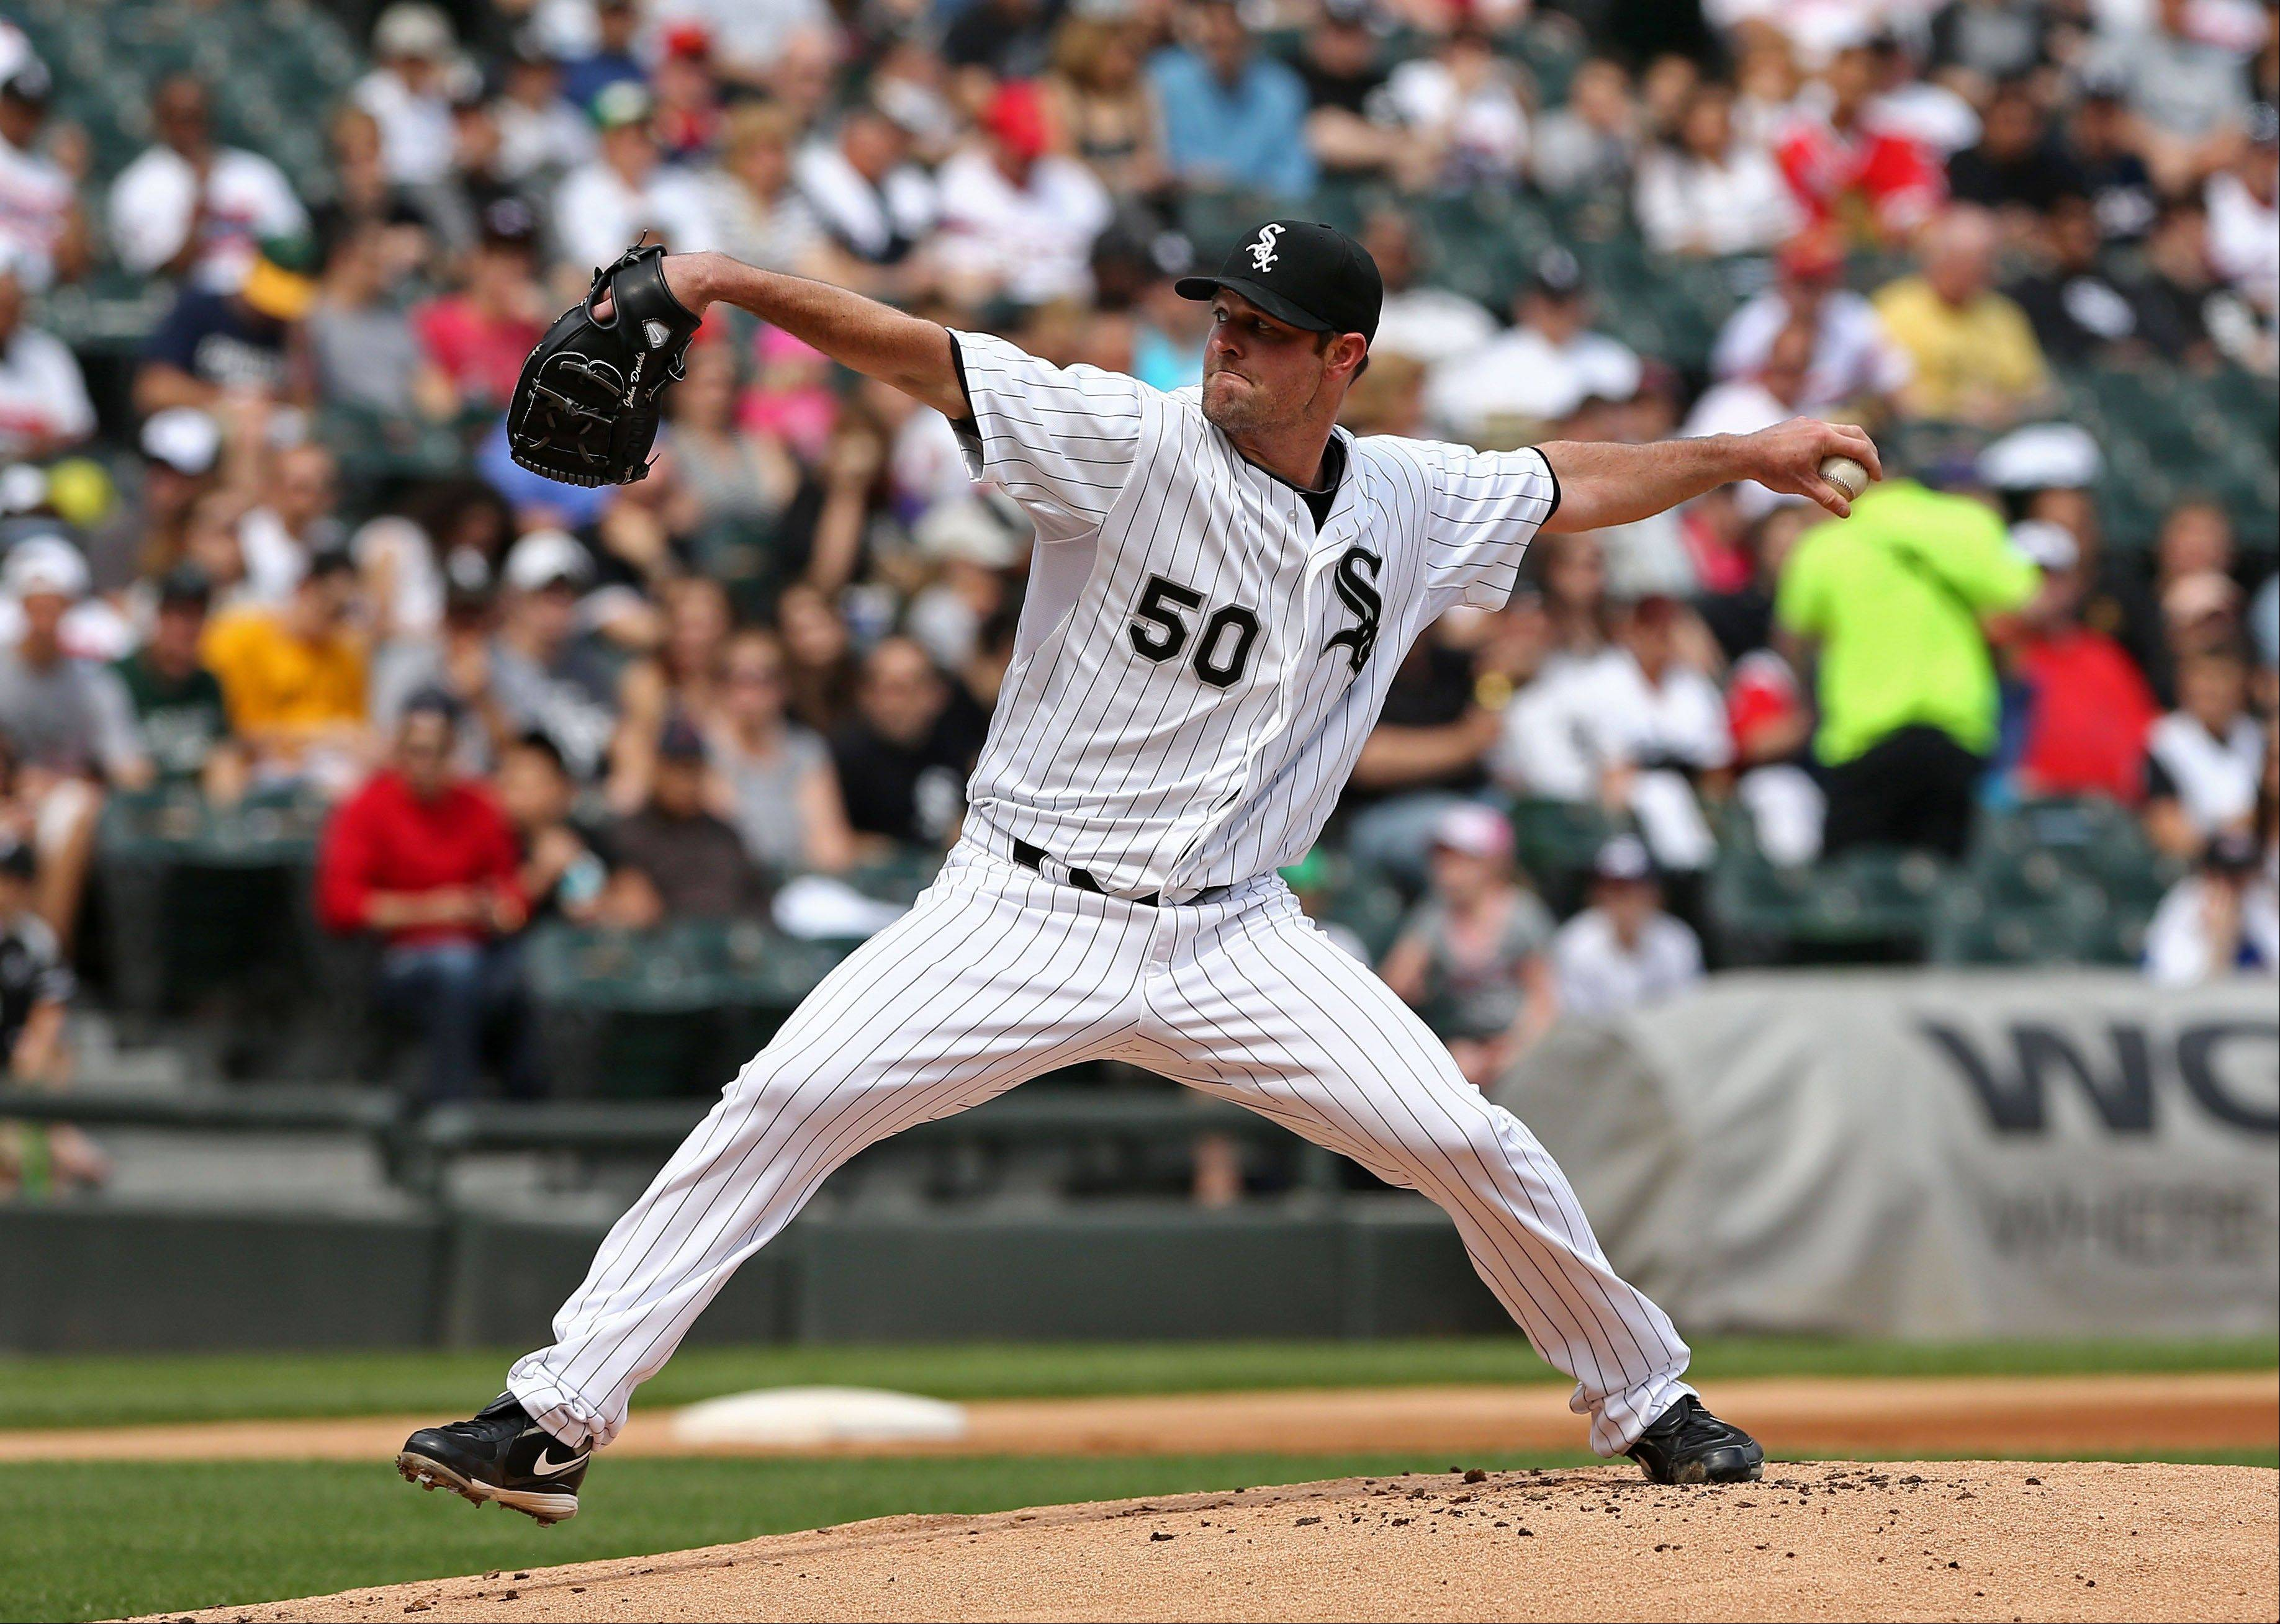 Chicago White Sox starting pitcher John Danks throws to the Oakland Athletics during the first inning in a baseball game on Saturday, June 8, 2013. (AP Photo/Charles Cherney)